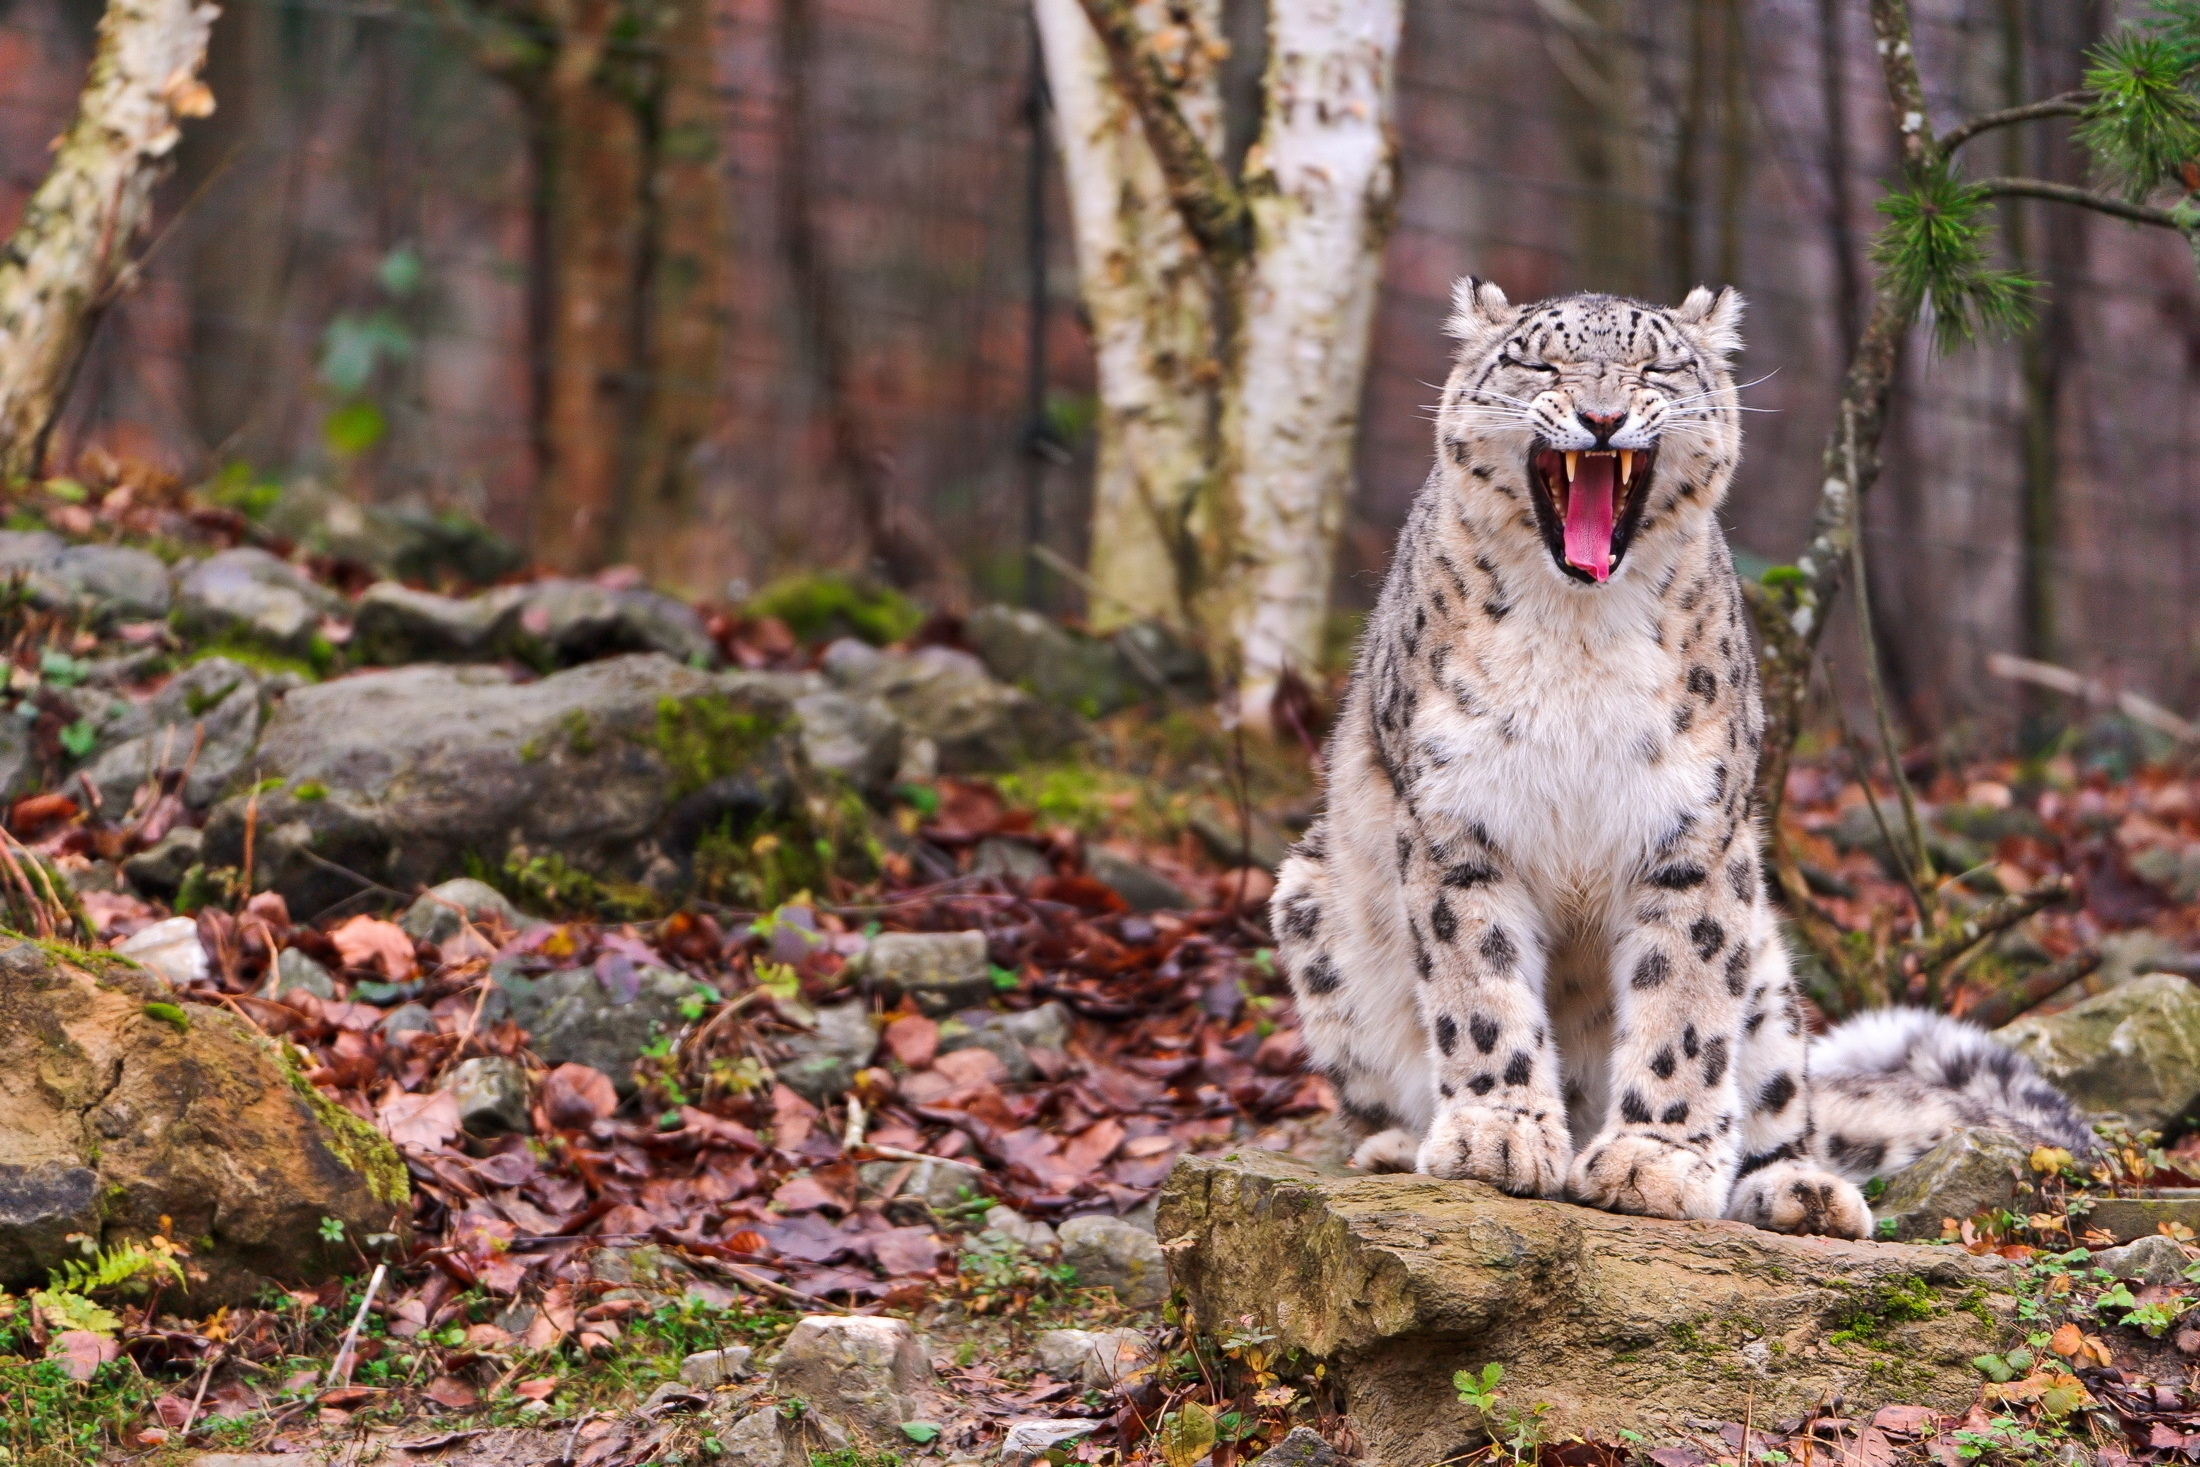 74045 download wallpaper Animals, Predator, Grin, Muzzle, Autumn, Leaves, Forest, Snow Leopard screensavers and pictures for free